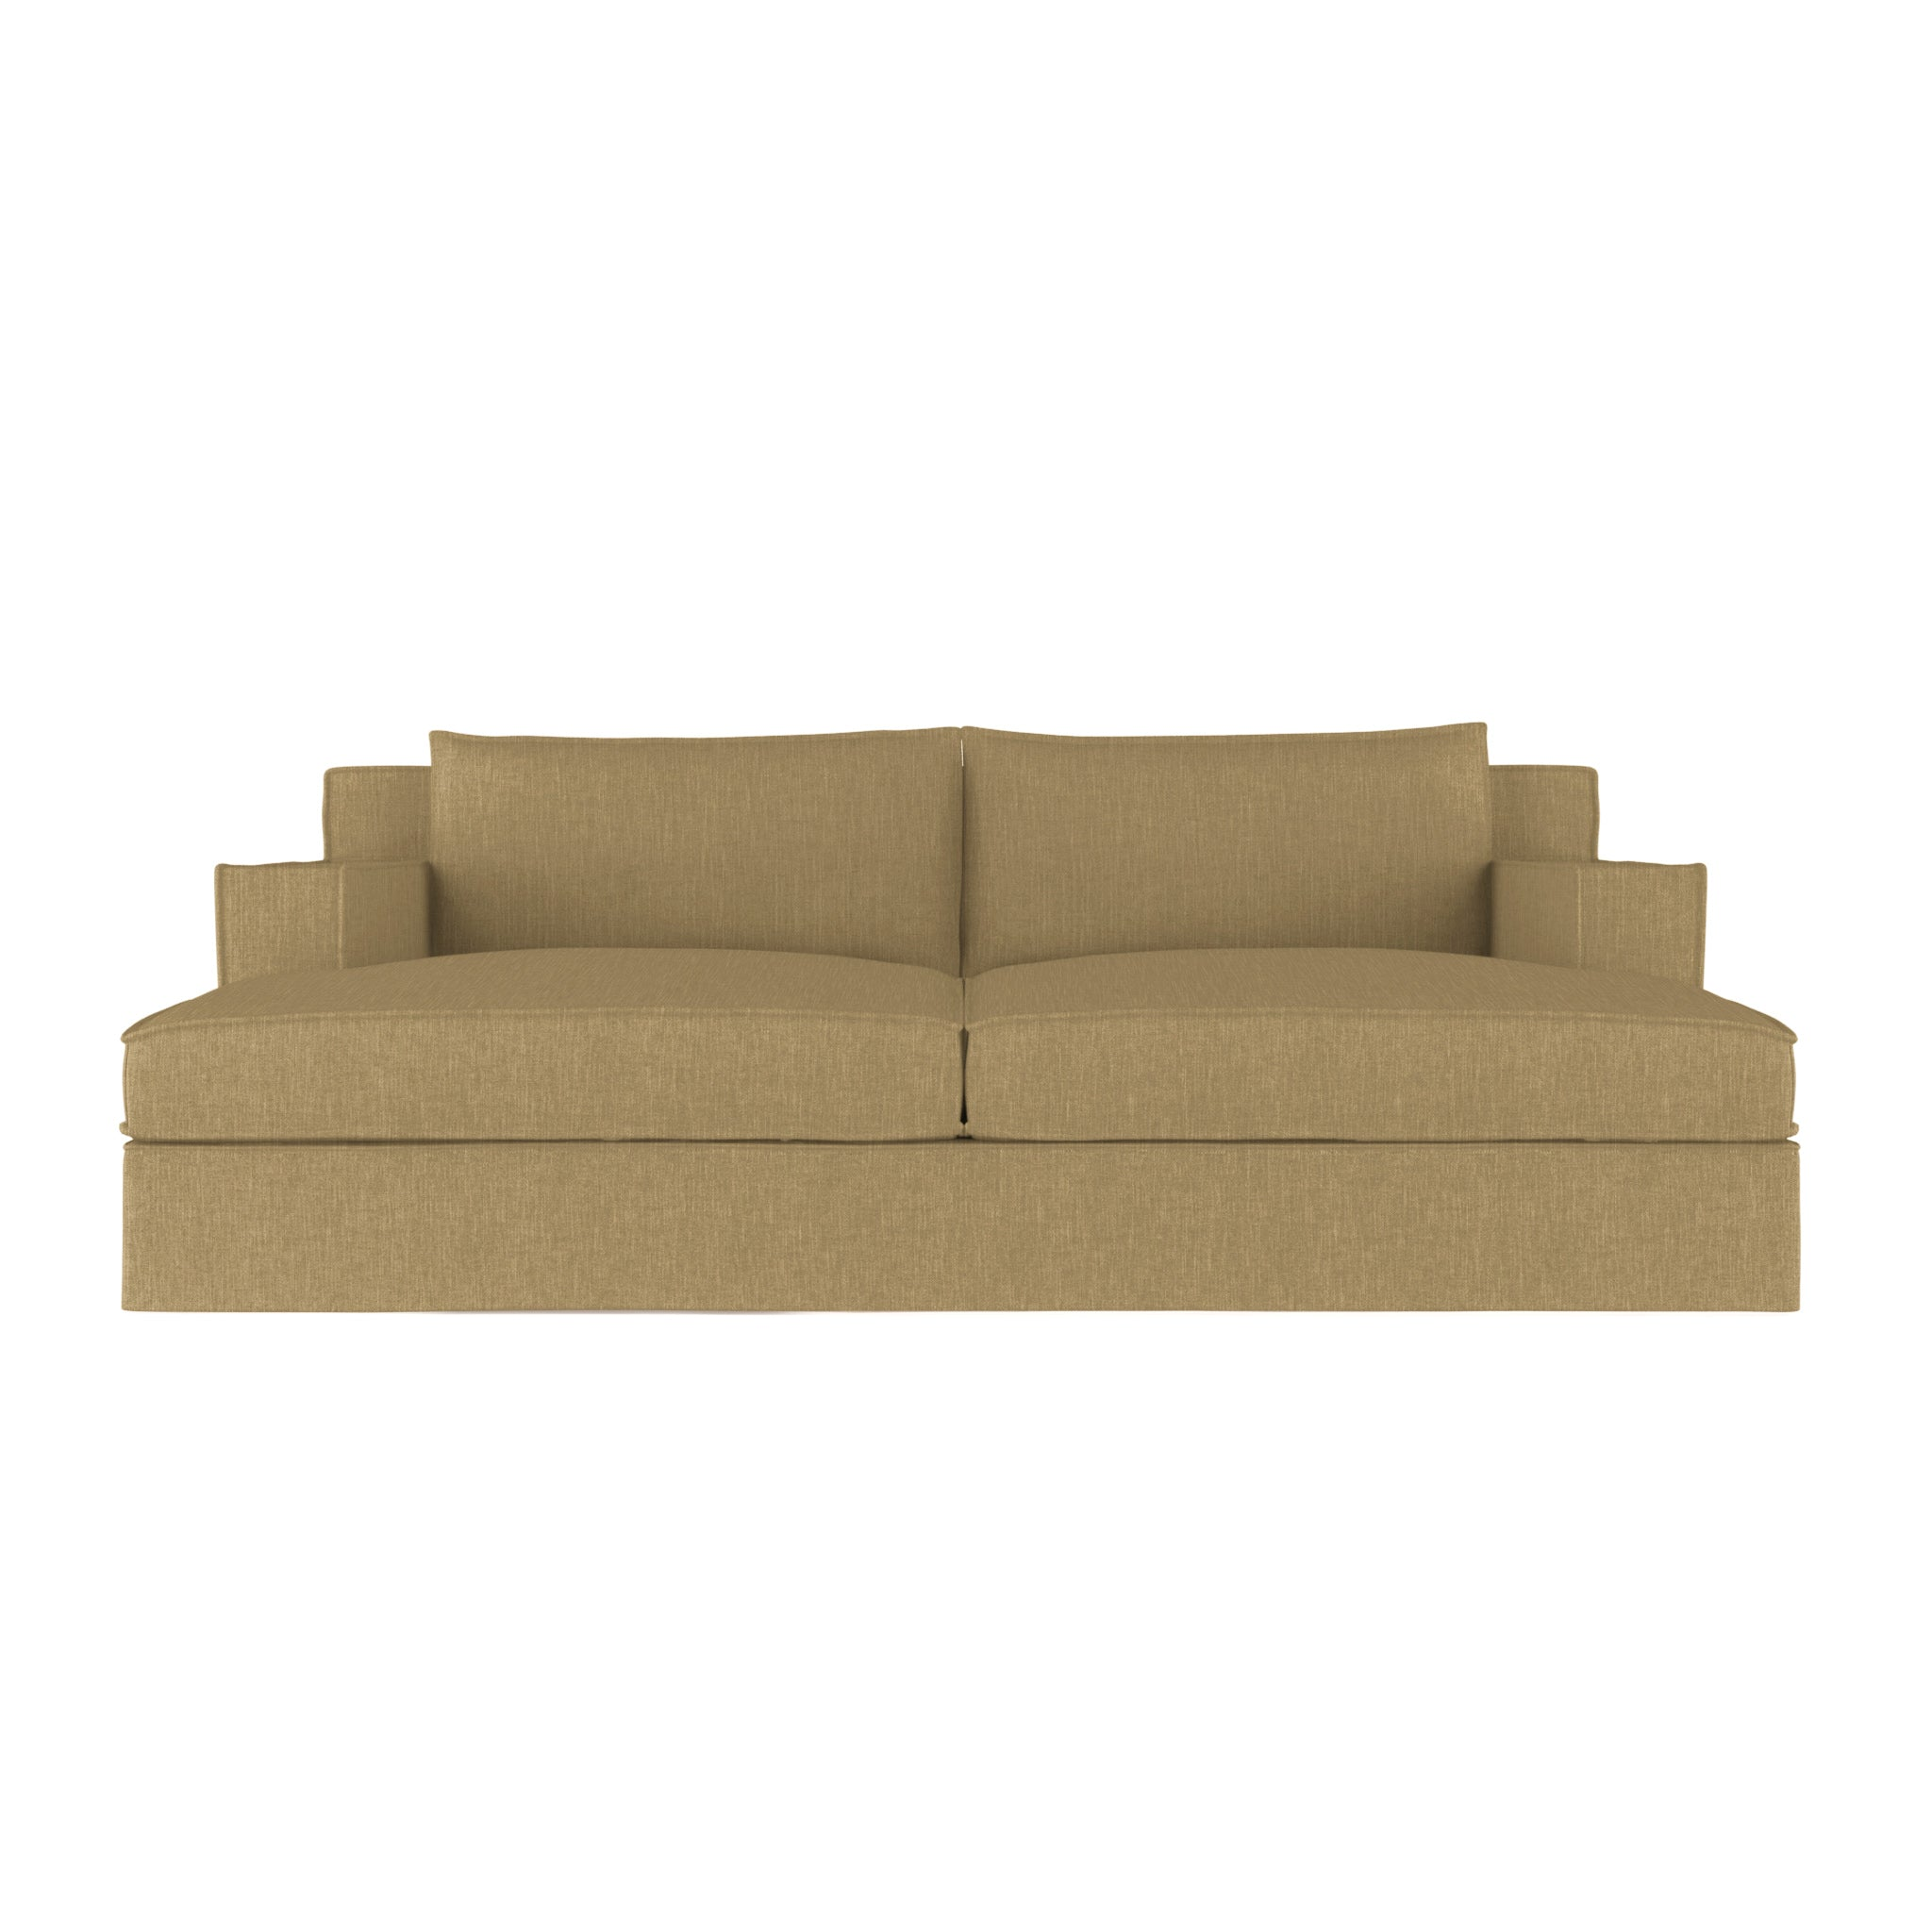 Mulberry Daybed - Marzipan Box Weave Linen